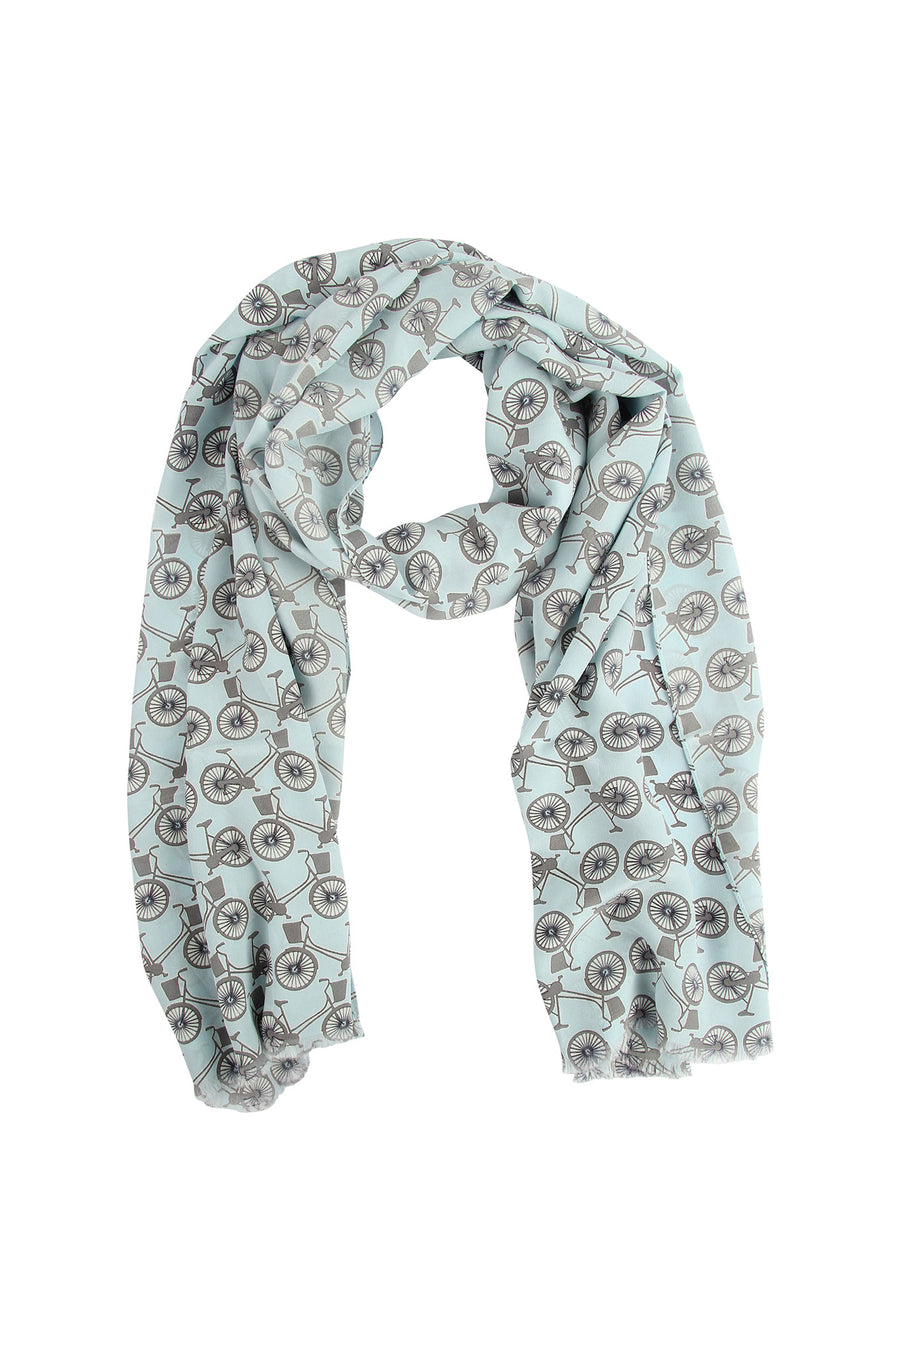 Lotty B Silk Crepe-de-Chine Long Scarf BICYCLE REPEAT - BLACK & PALE BLUE close